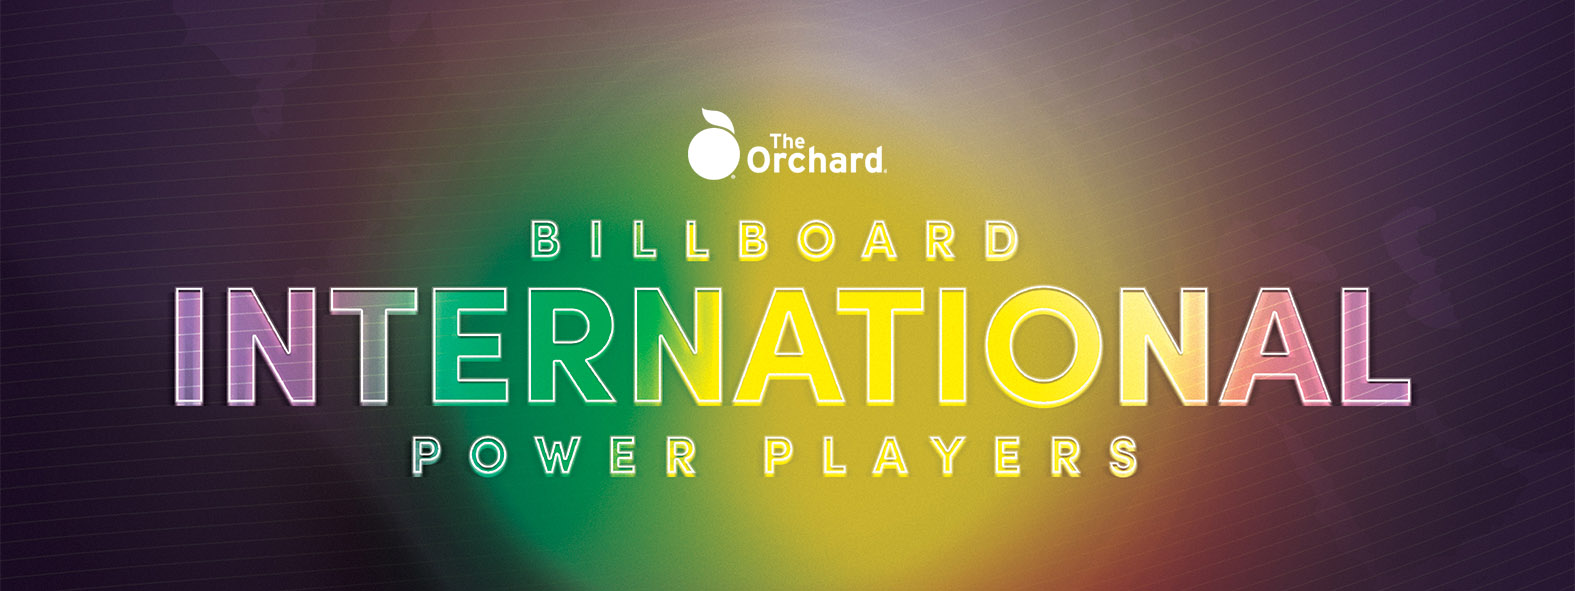 2021 Billboard International Power Players